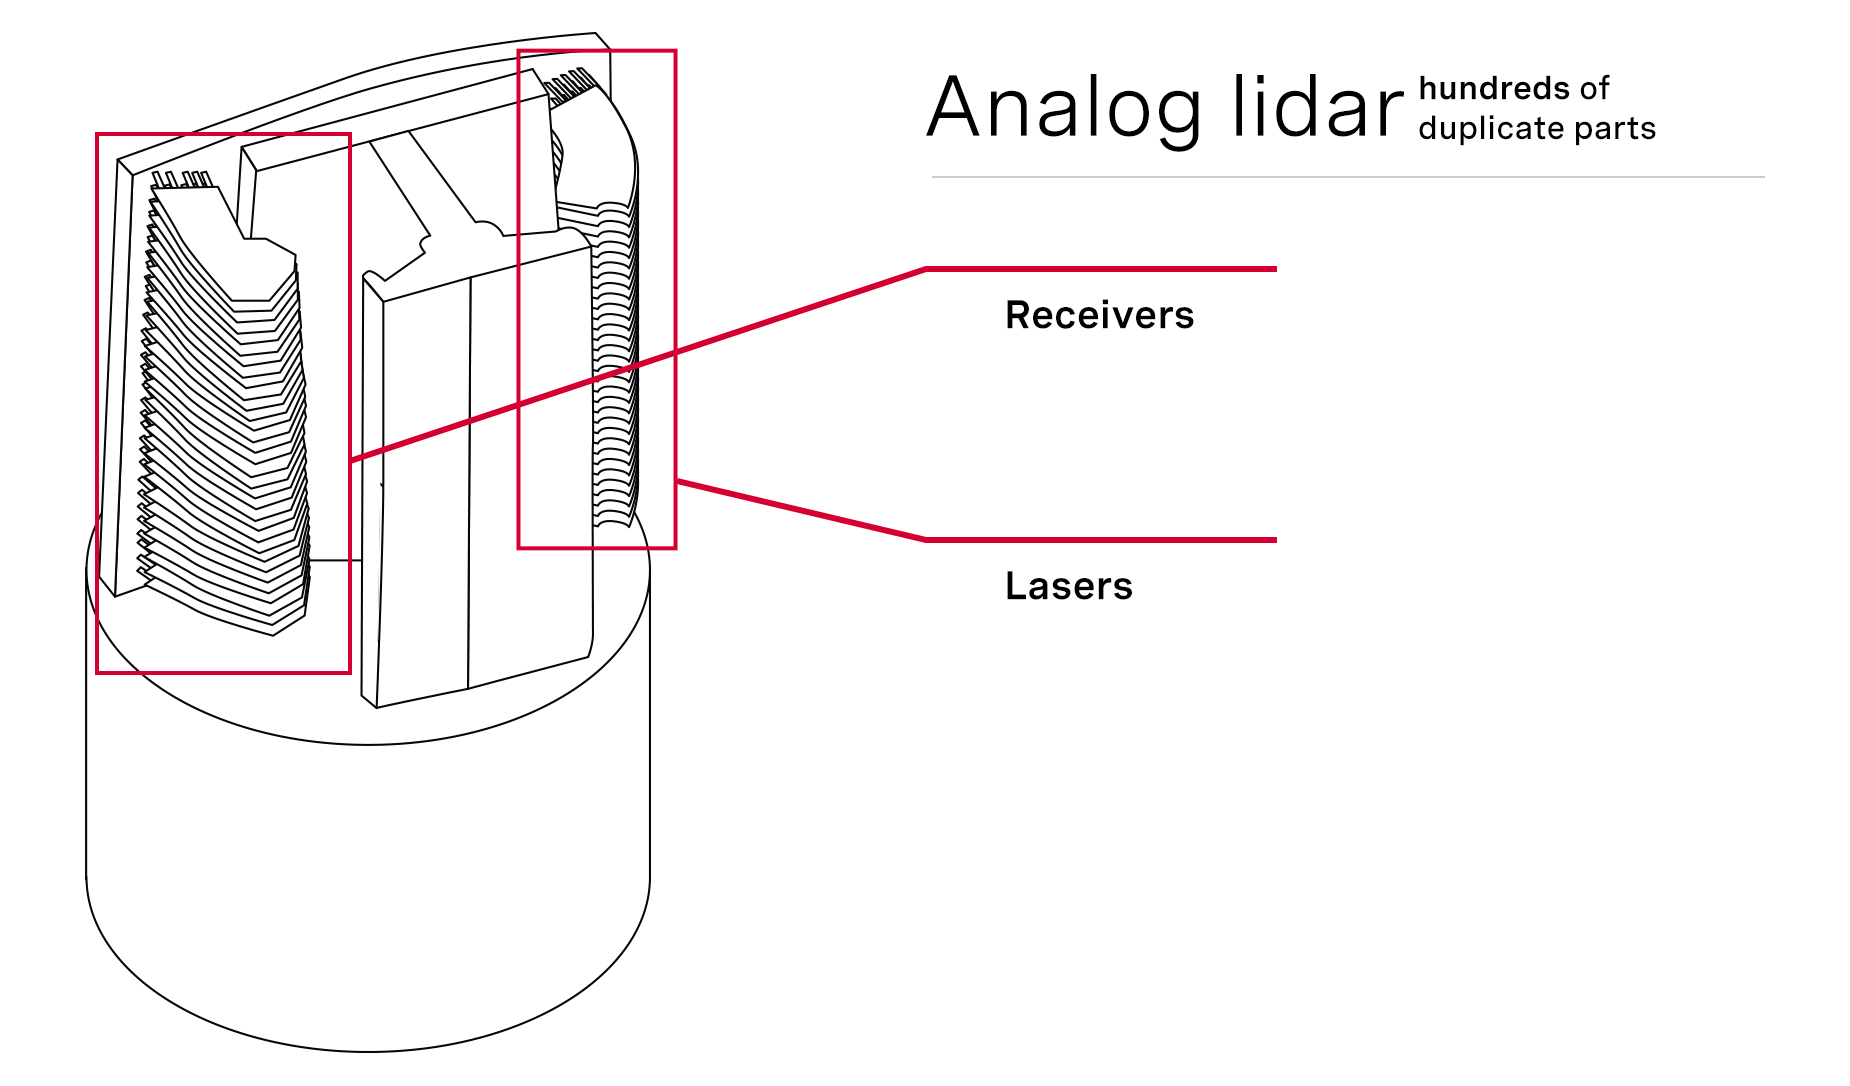 Analog lidar contains hundreds of components